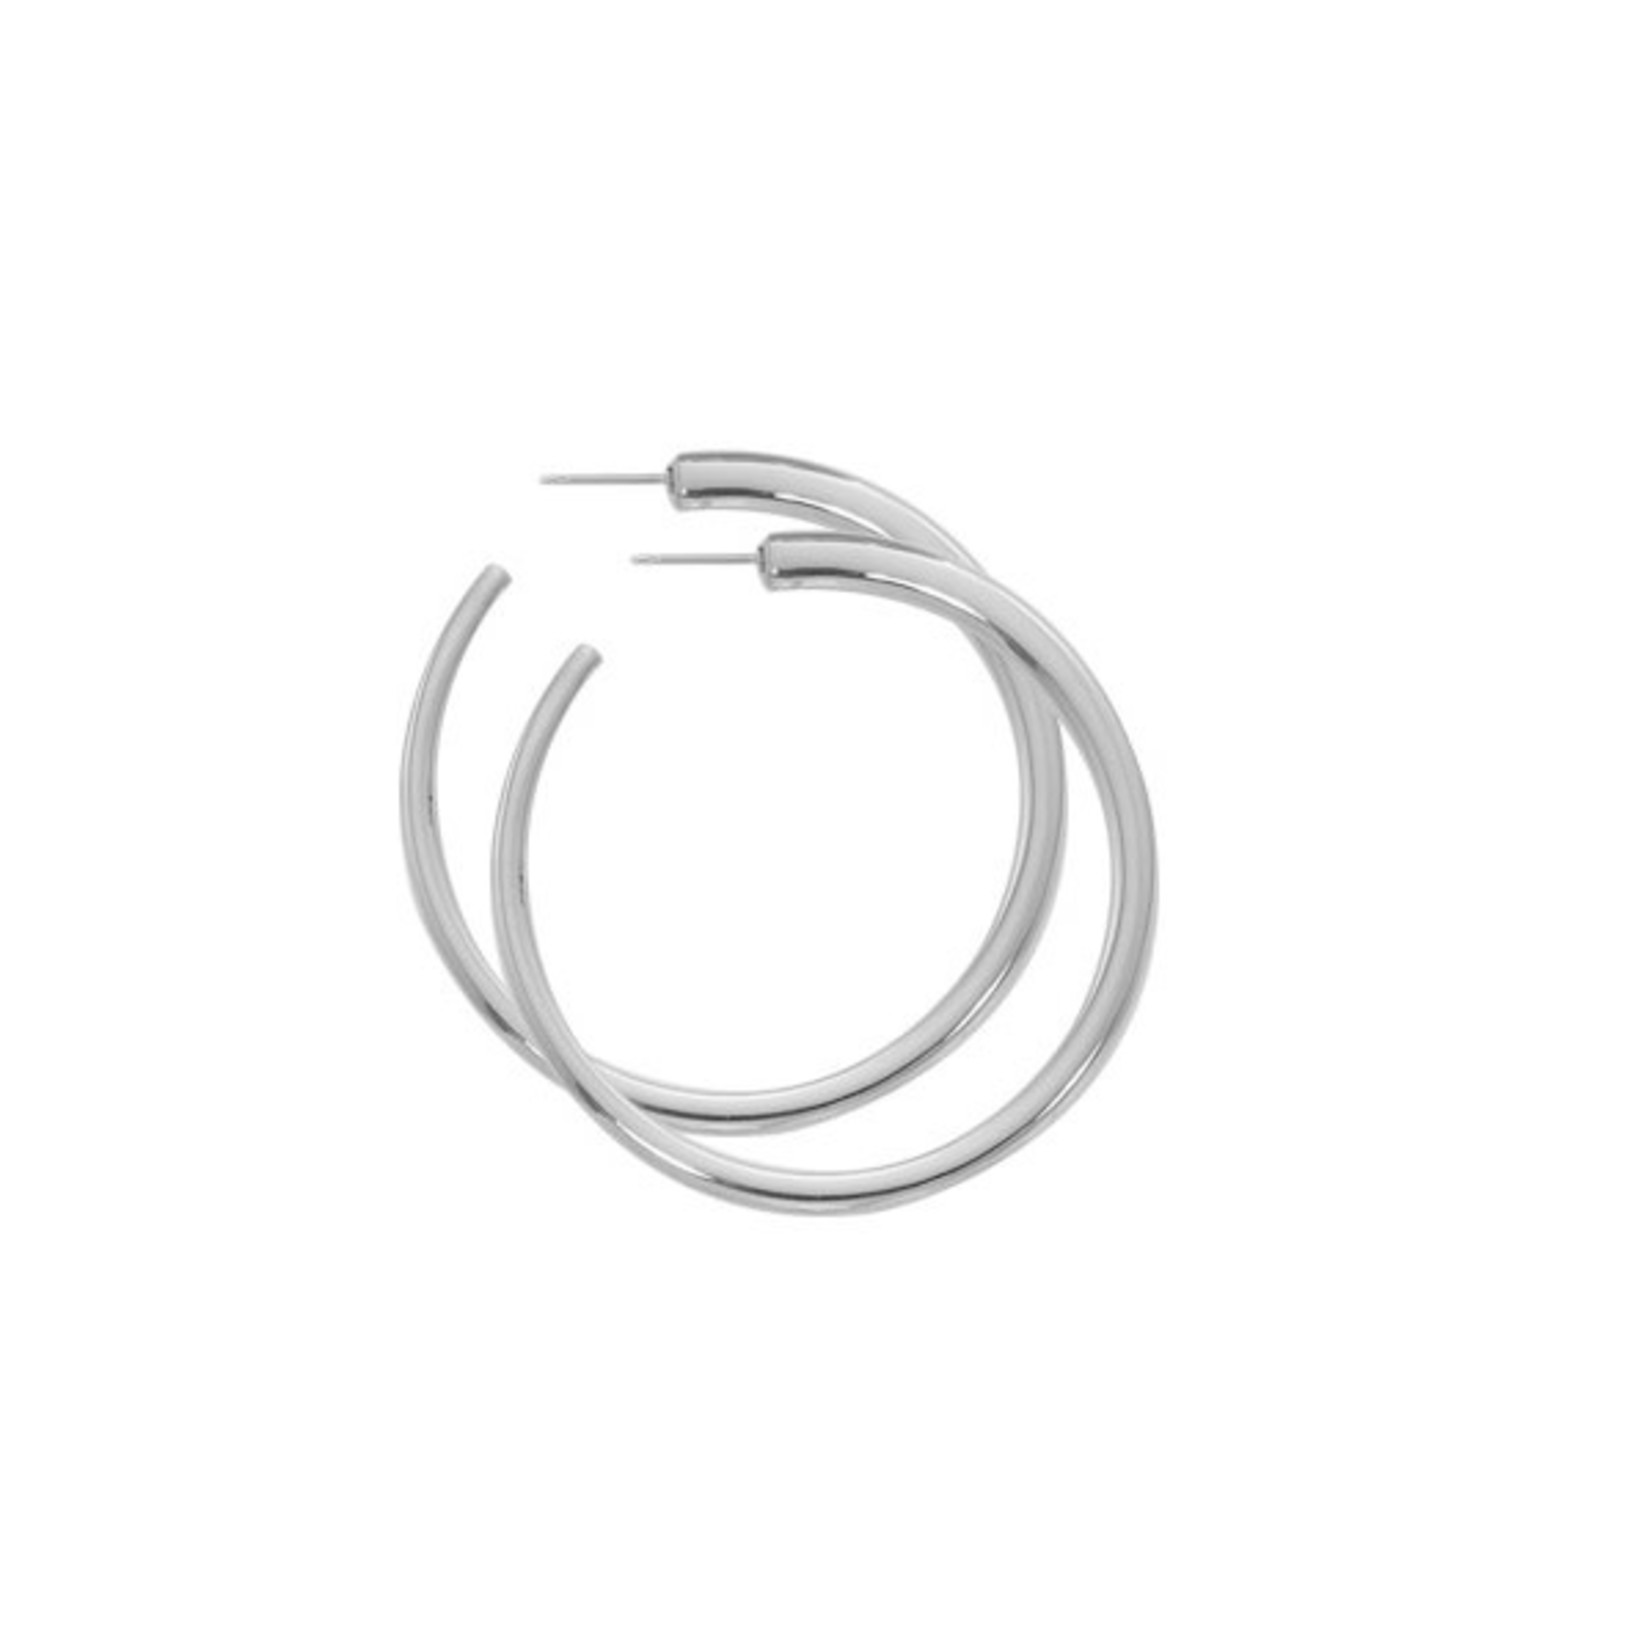 Silver XL Hoop Earring with Post